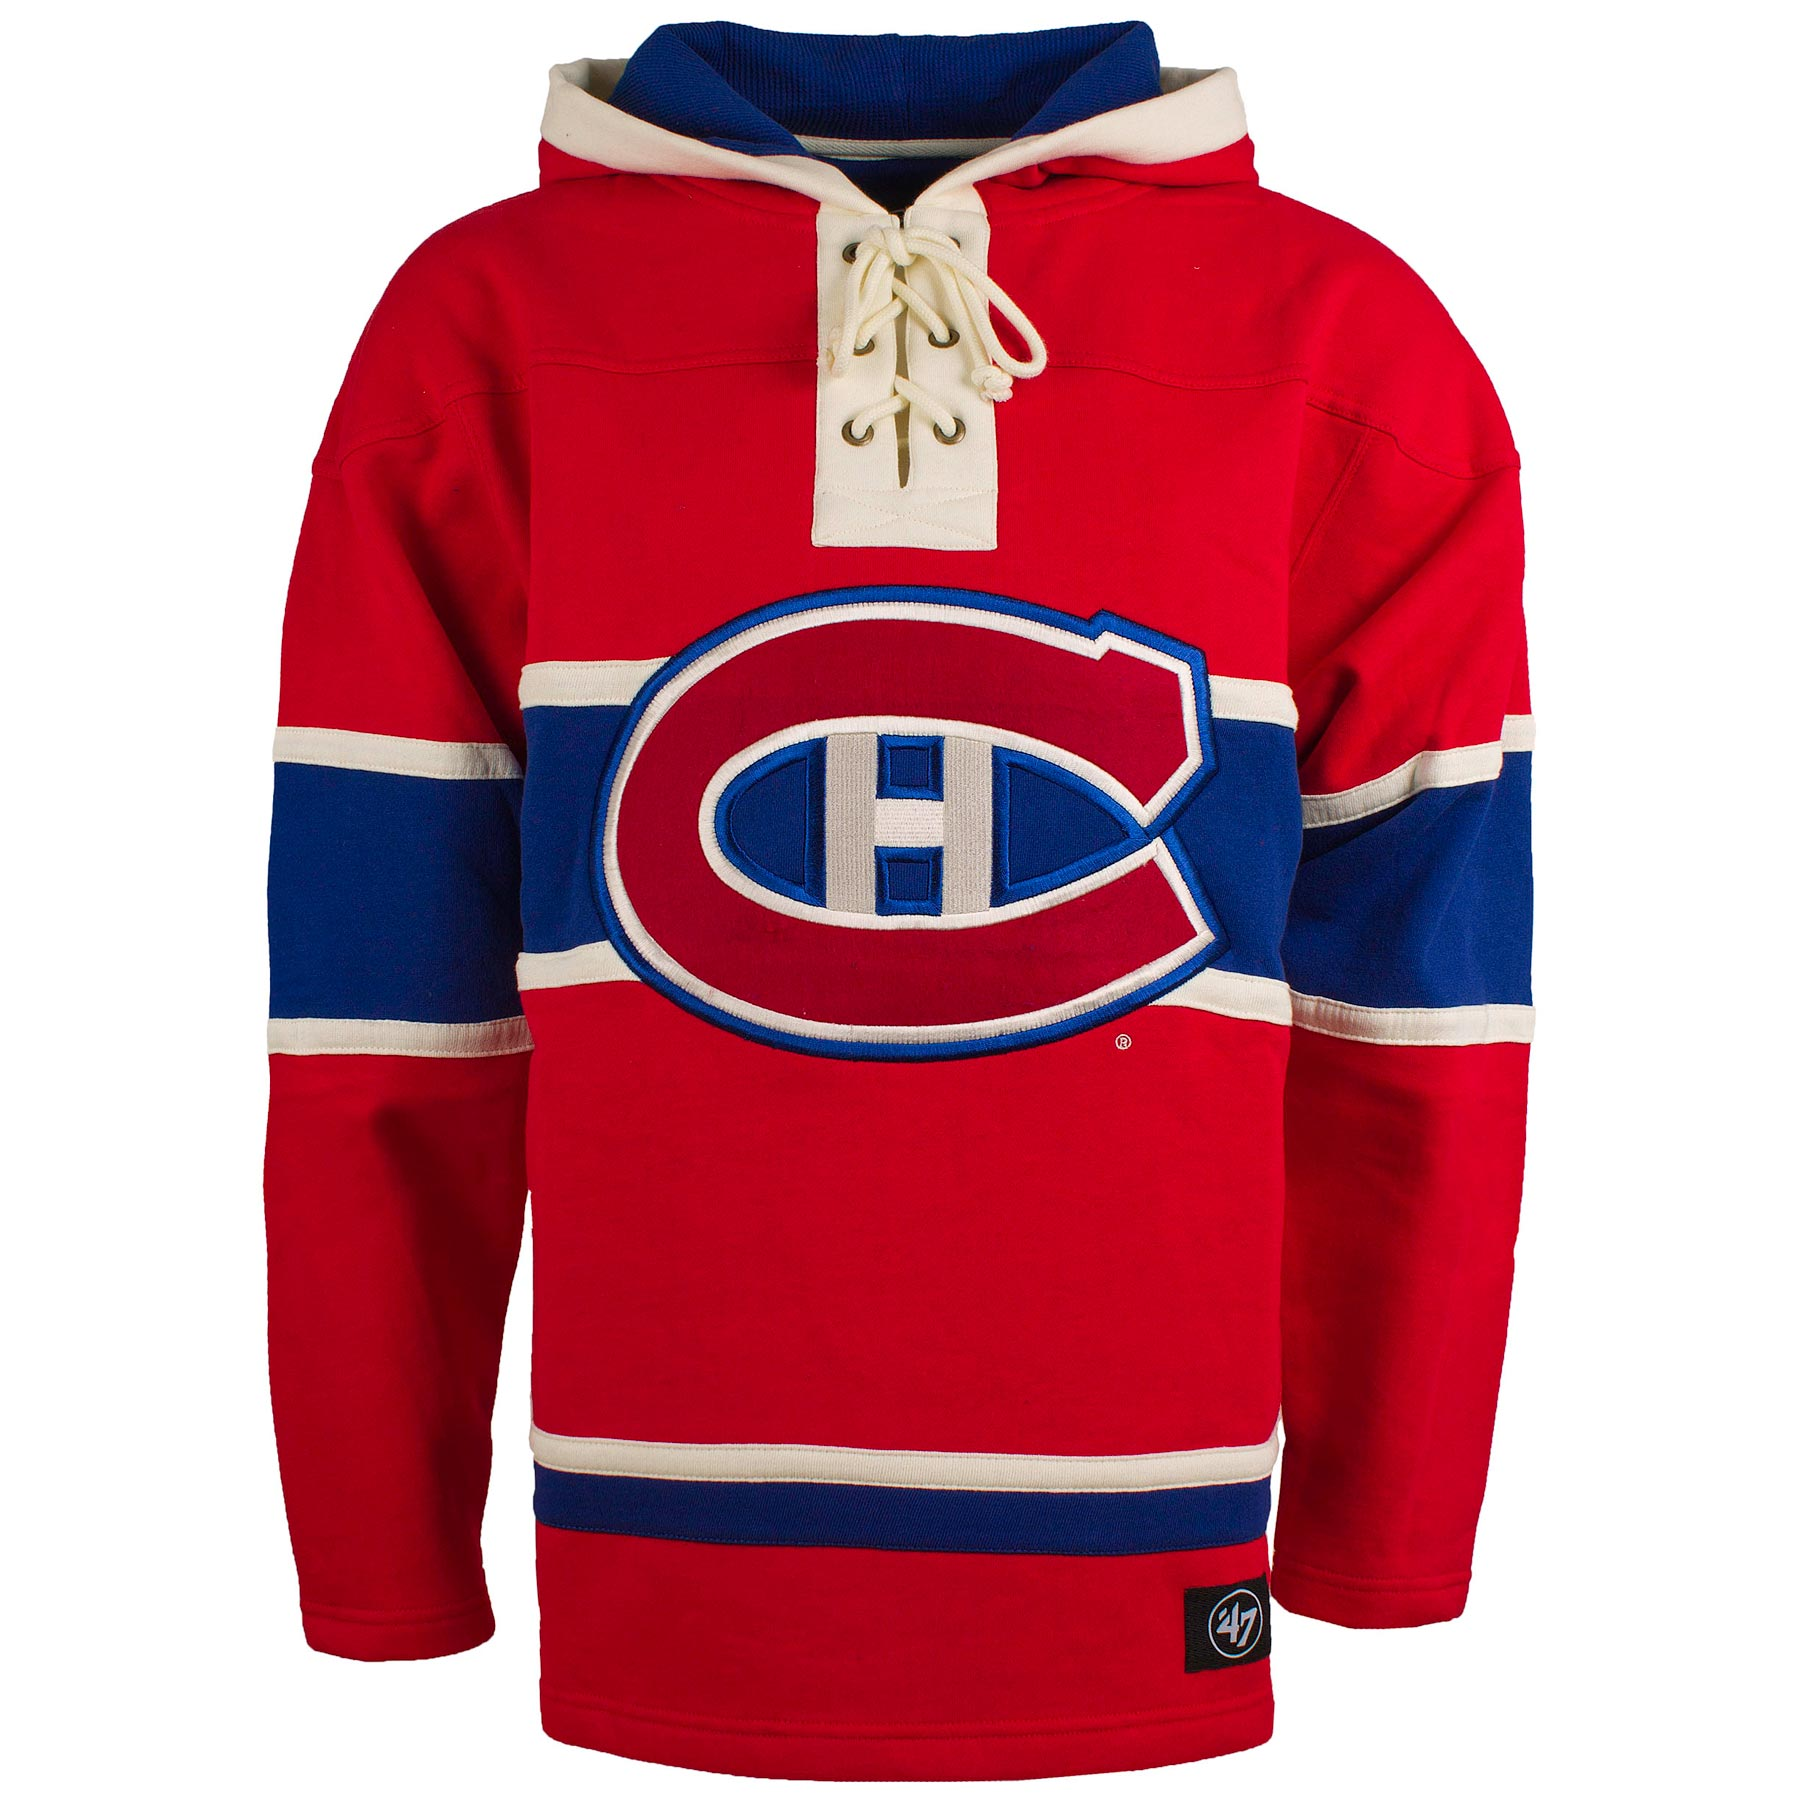 N44852_XL Montreal Canadiens NHL '47 Heavyweight Jersey Lacer Hoodie - Cotton/Polyester Blend - Size Small - IceJerseys NHL Sweatshirts & Hoodies Teamware / Logo